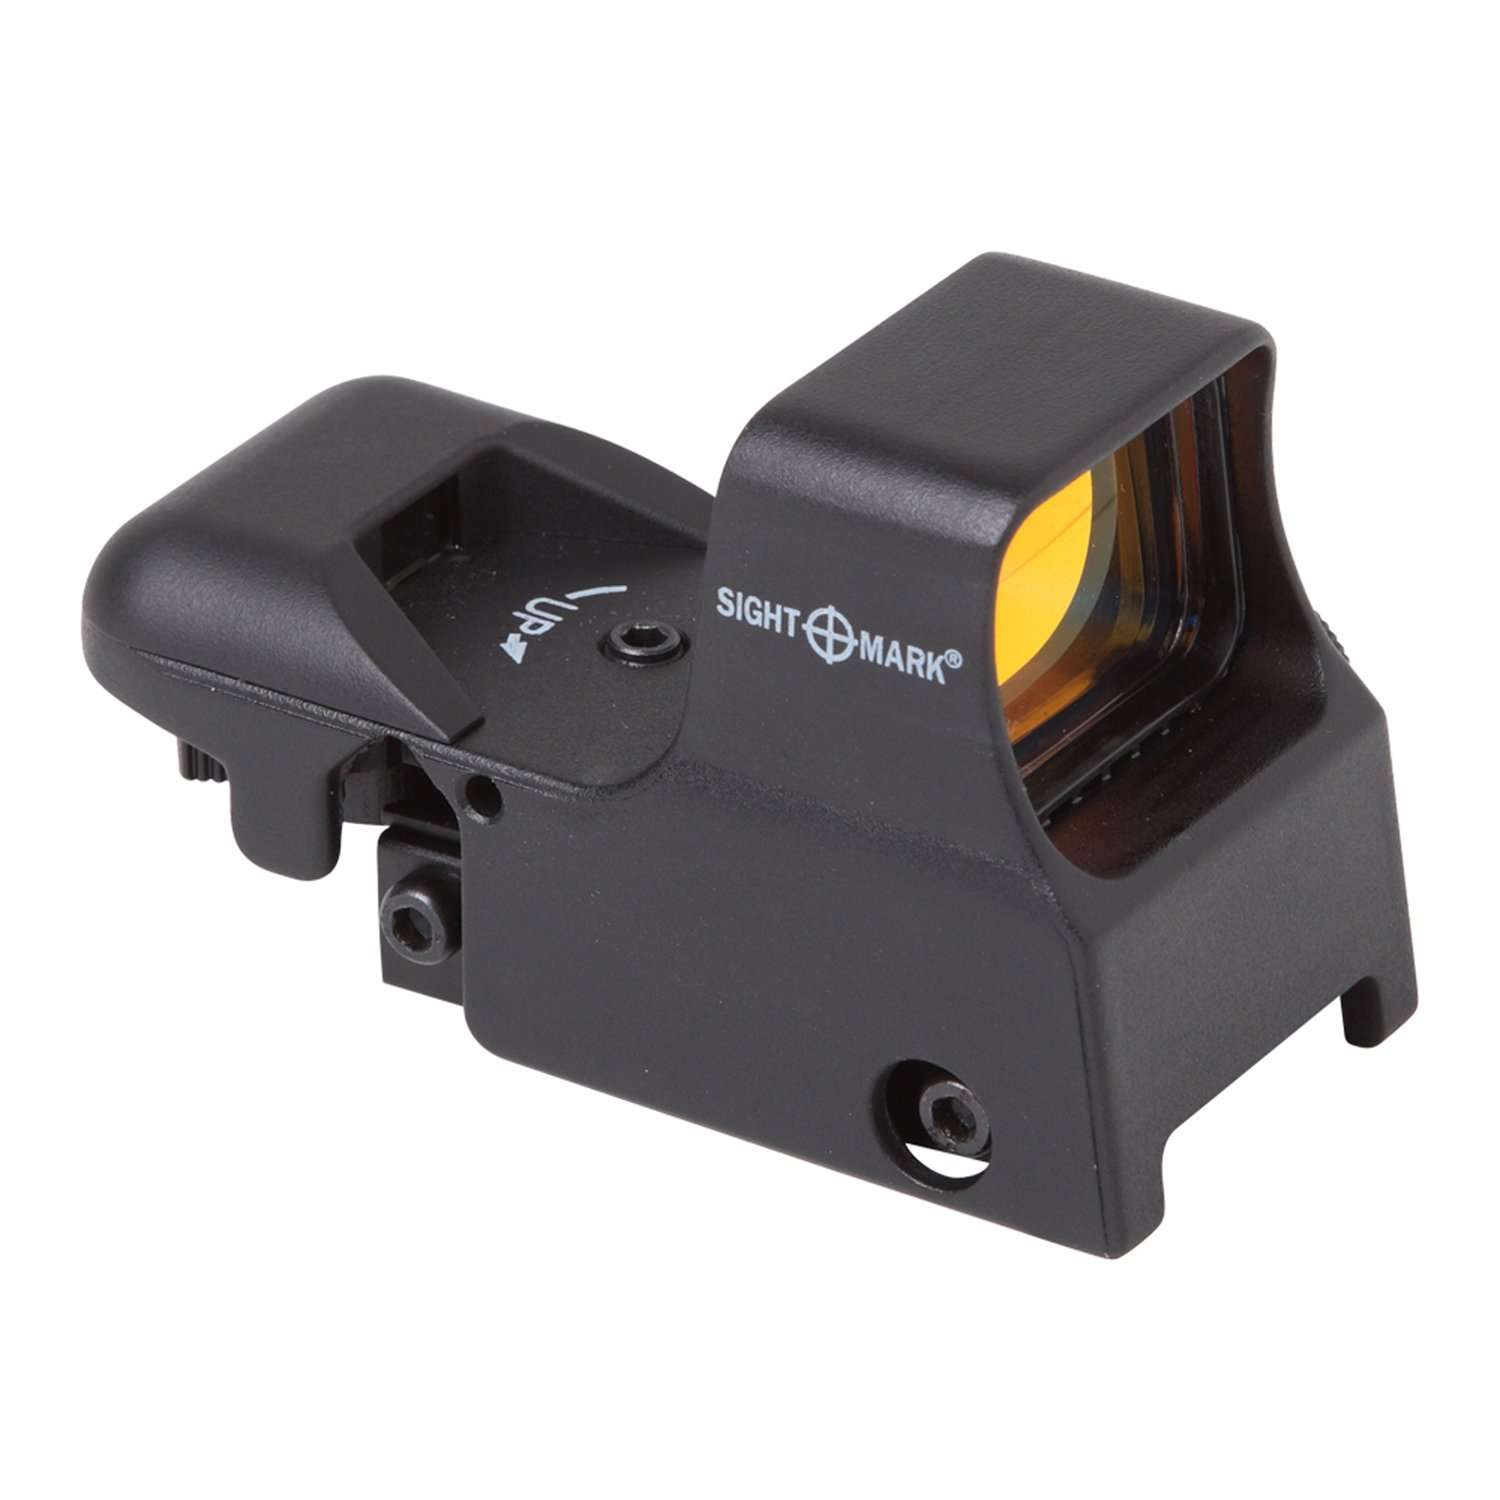 sightmark reflex sight.